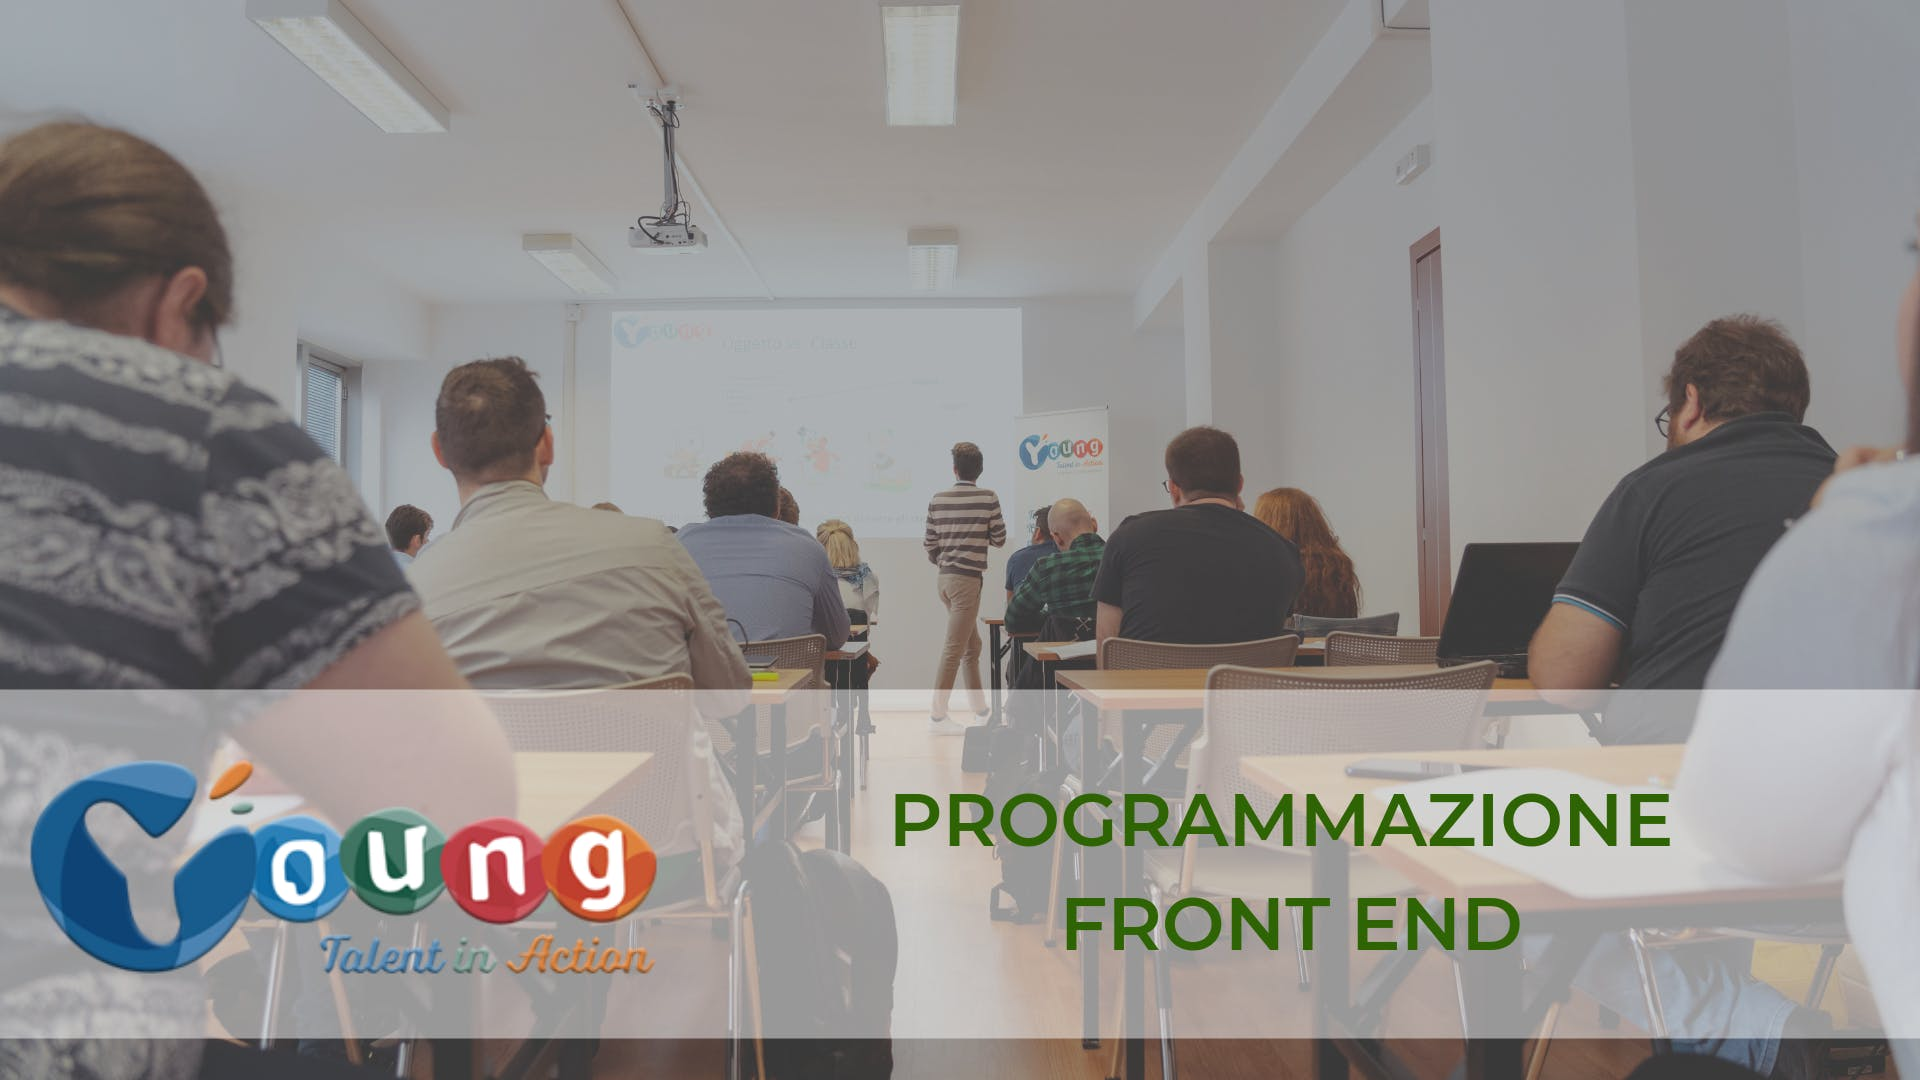 Corso gratuito di Coding Front end: Javascript & React | Young Talent in Action 2019 | Catania